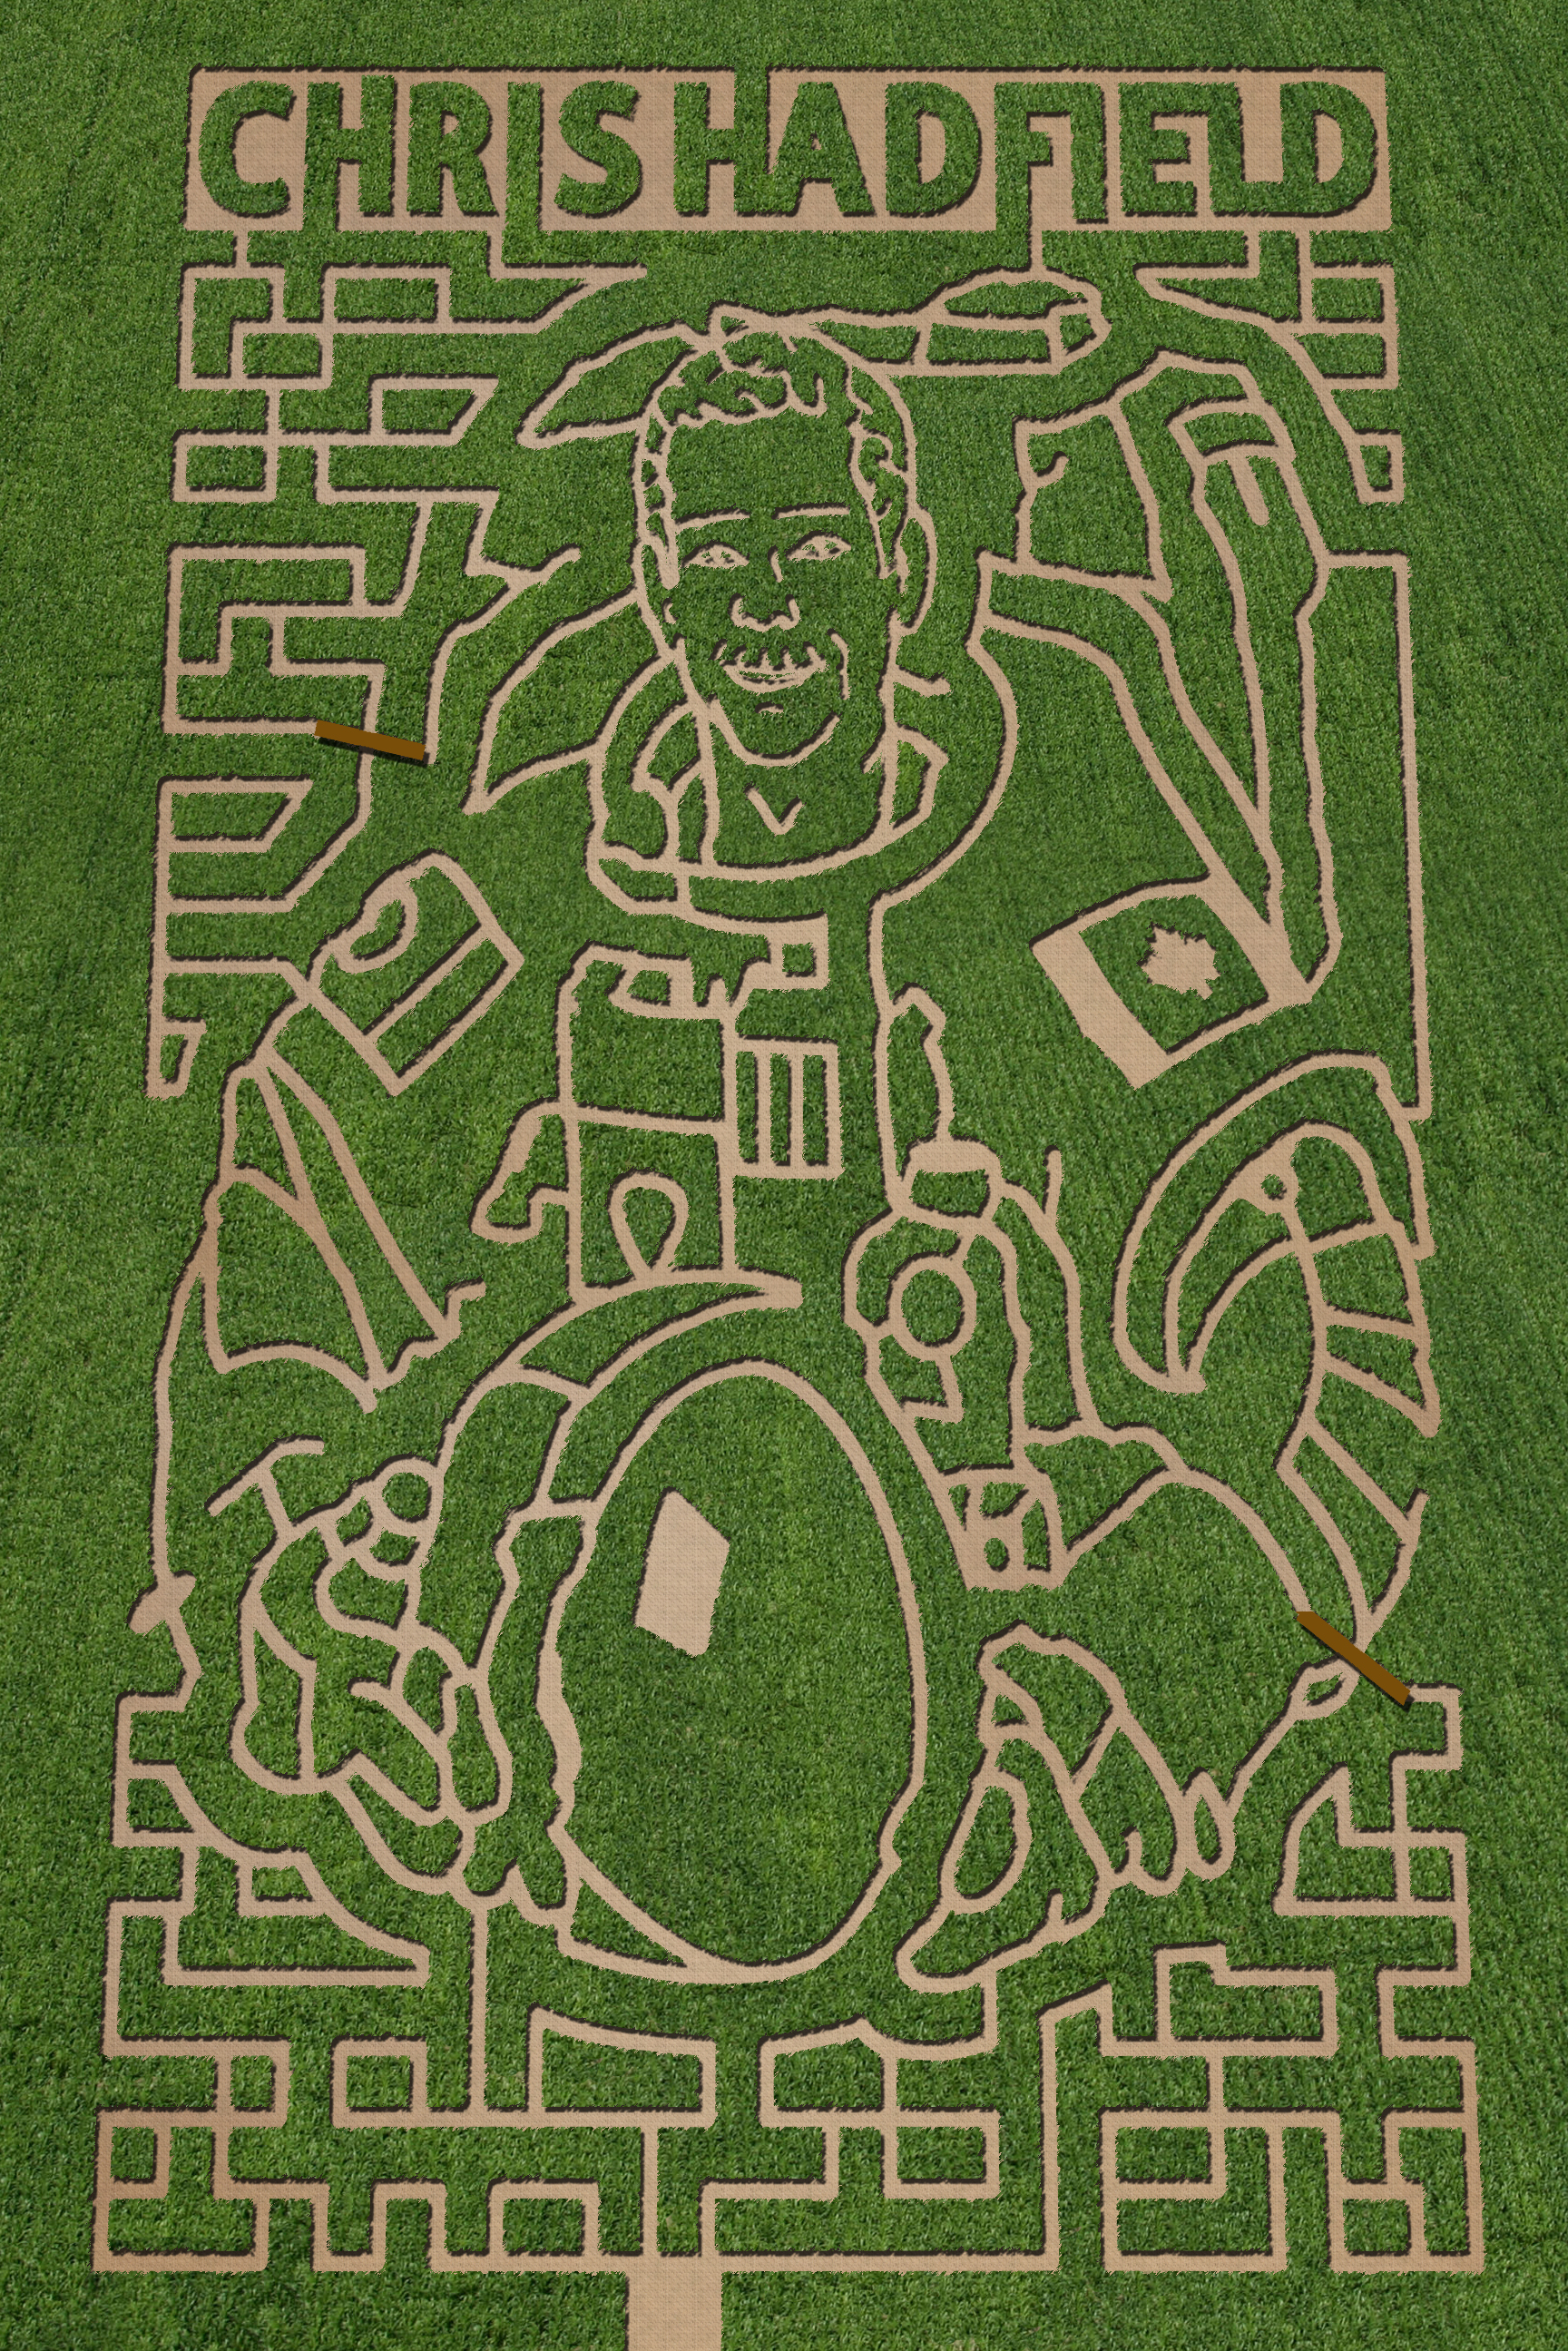 chris hadfield maze 2014.jpg